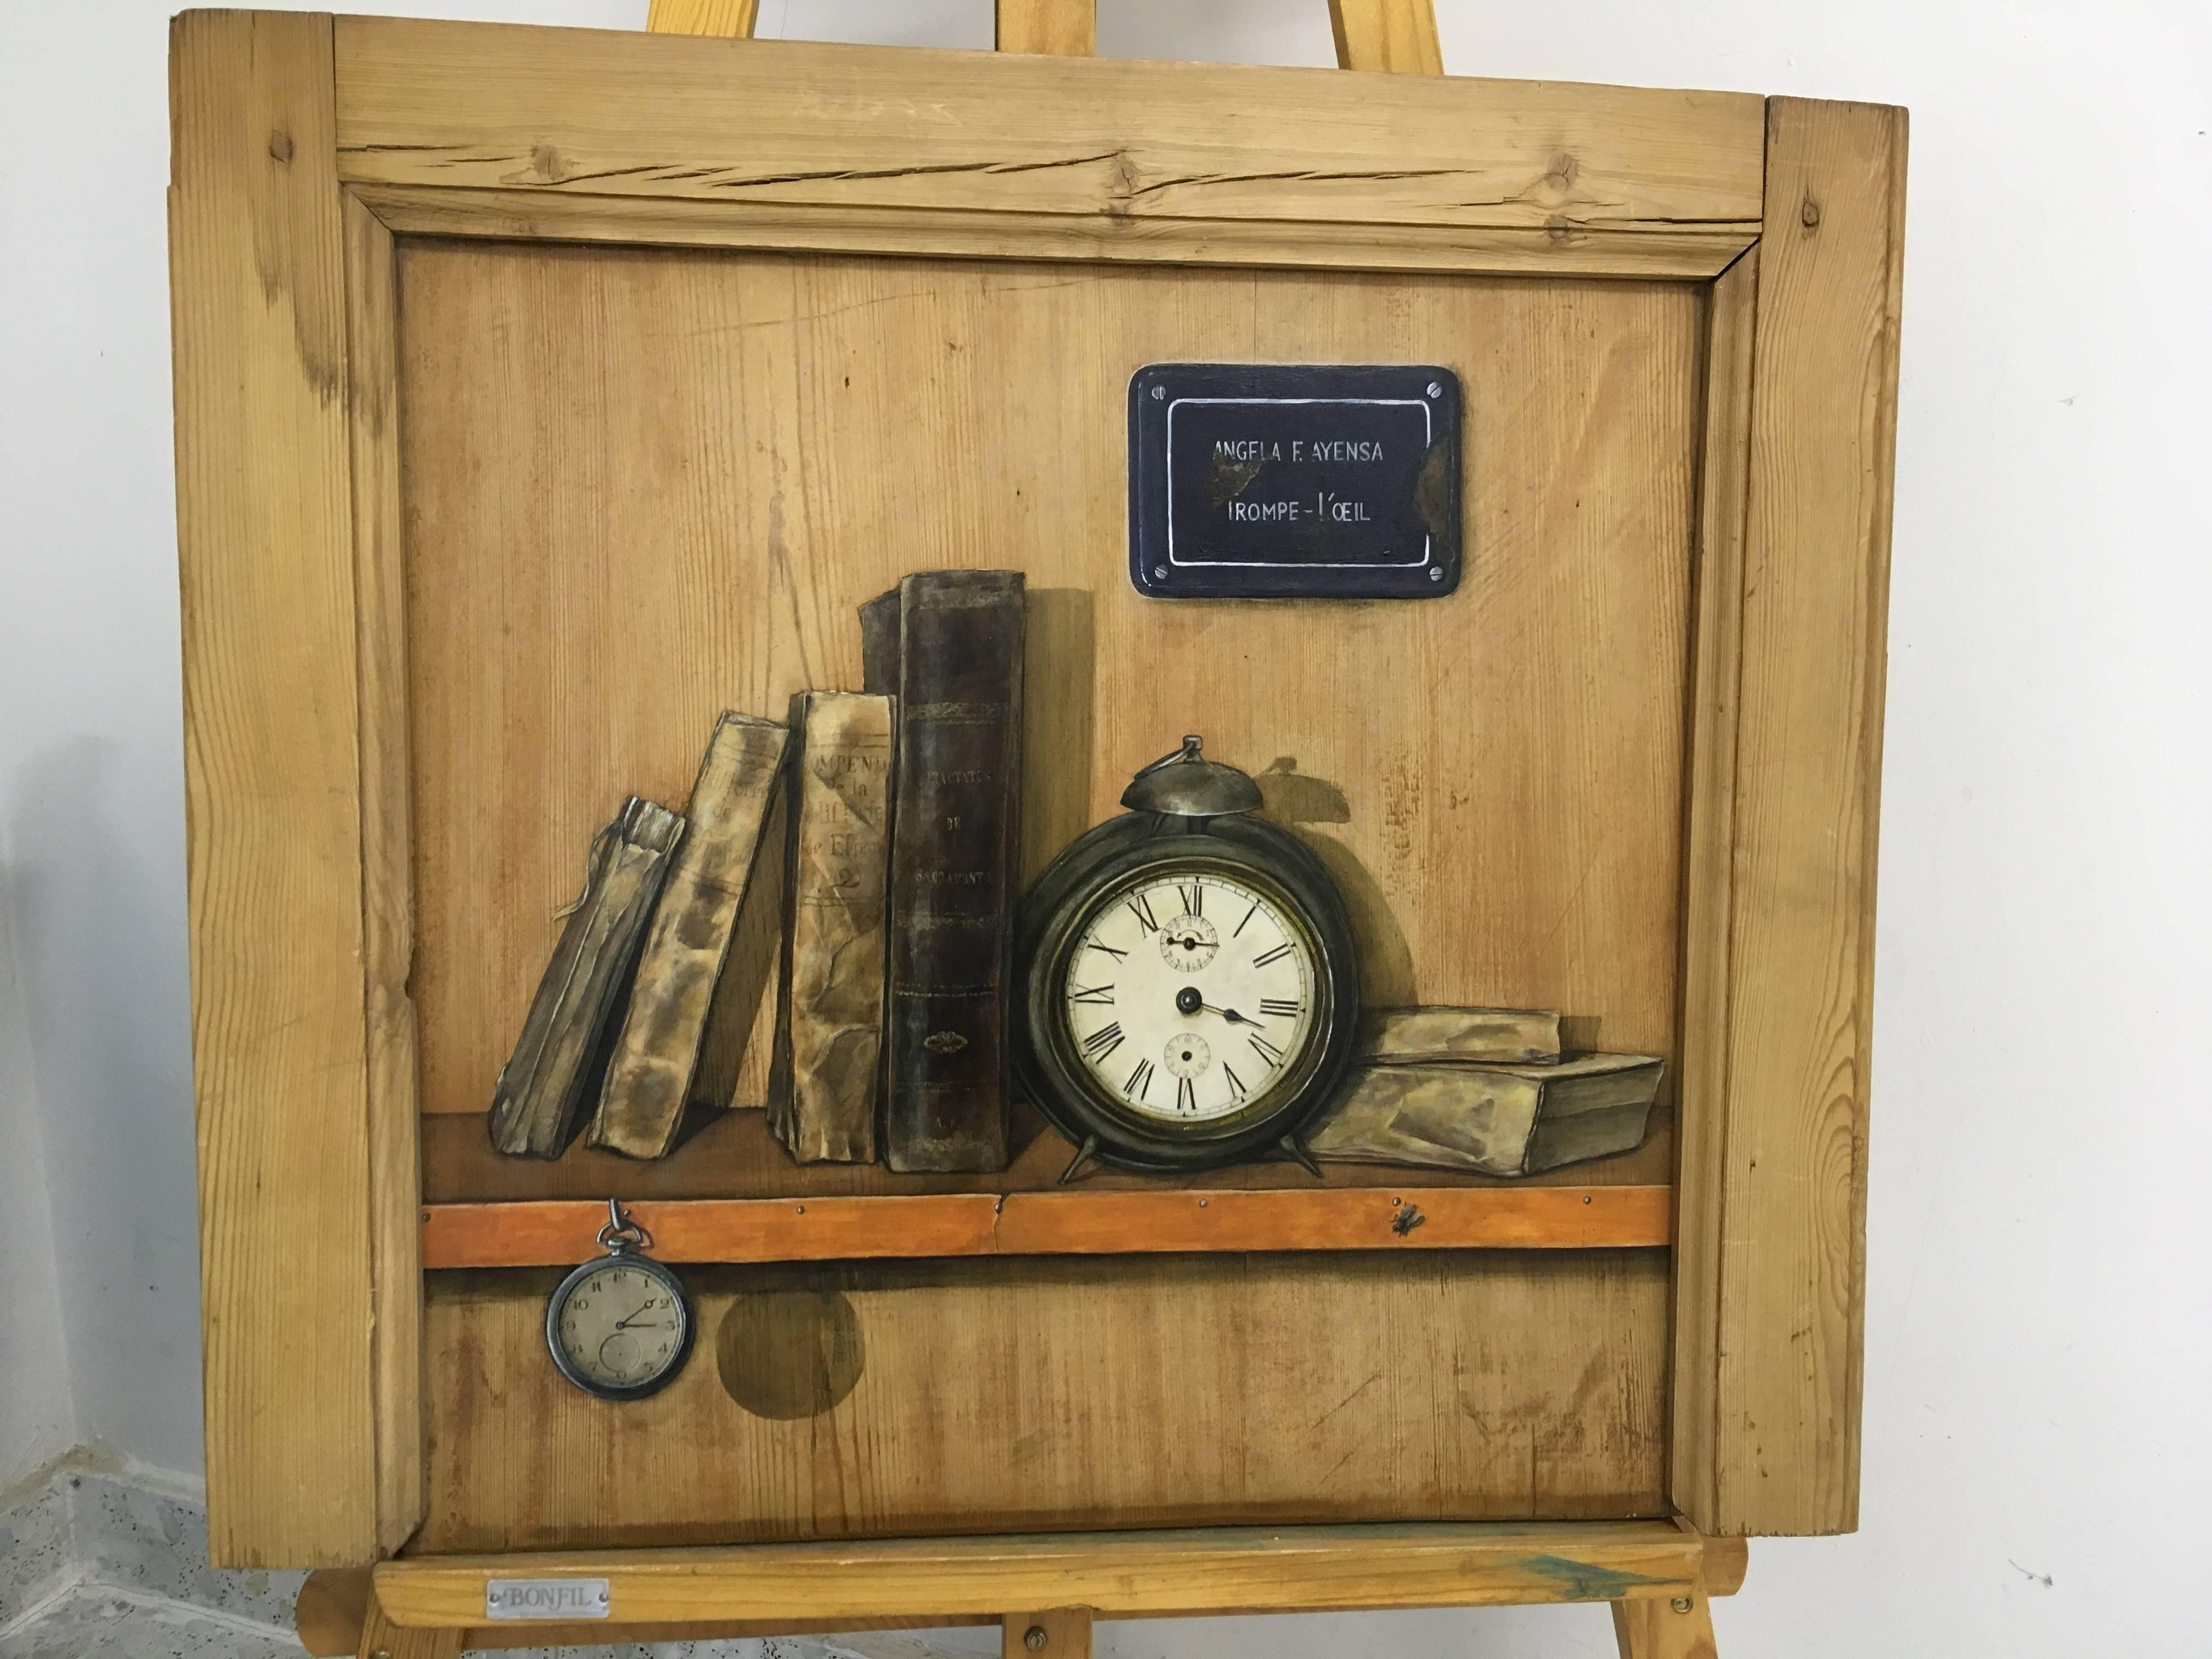 Conflicto, oil on cupboard wooden panel, trompe-l'oeil still life